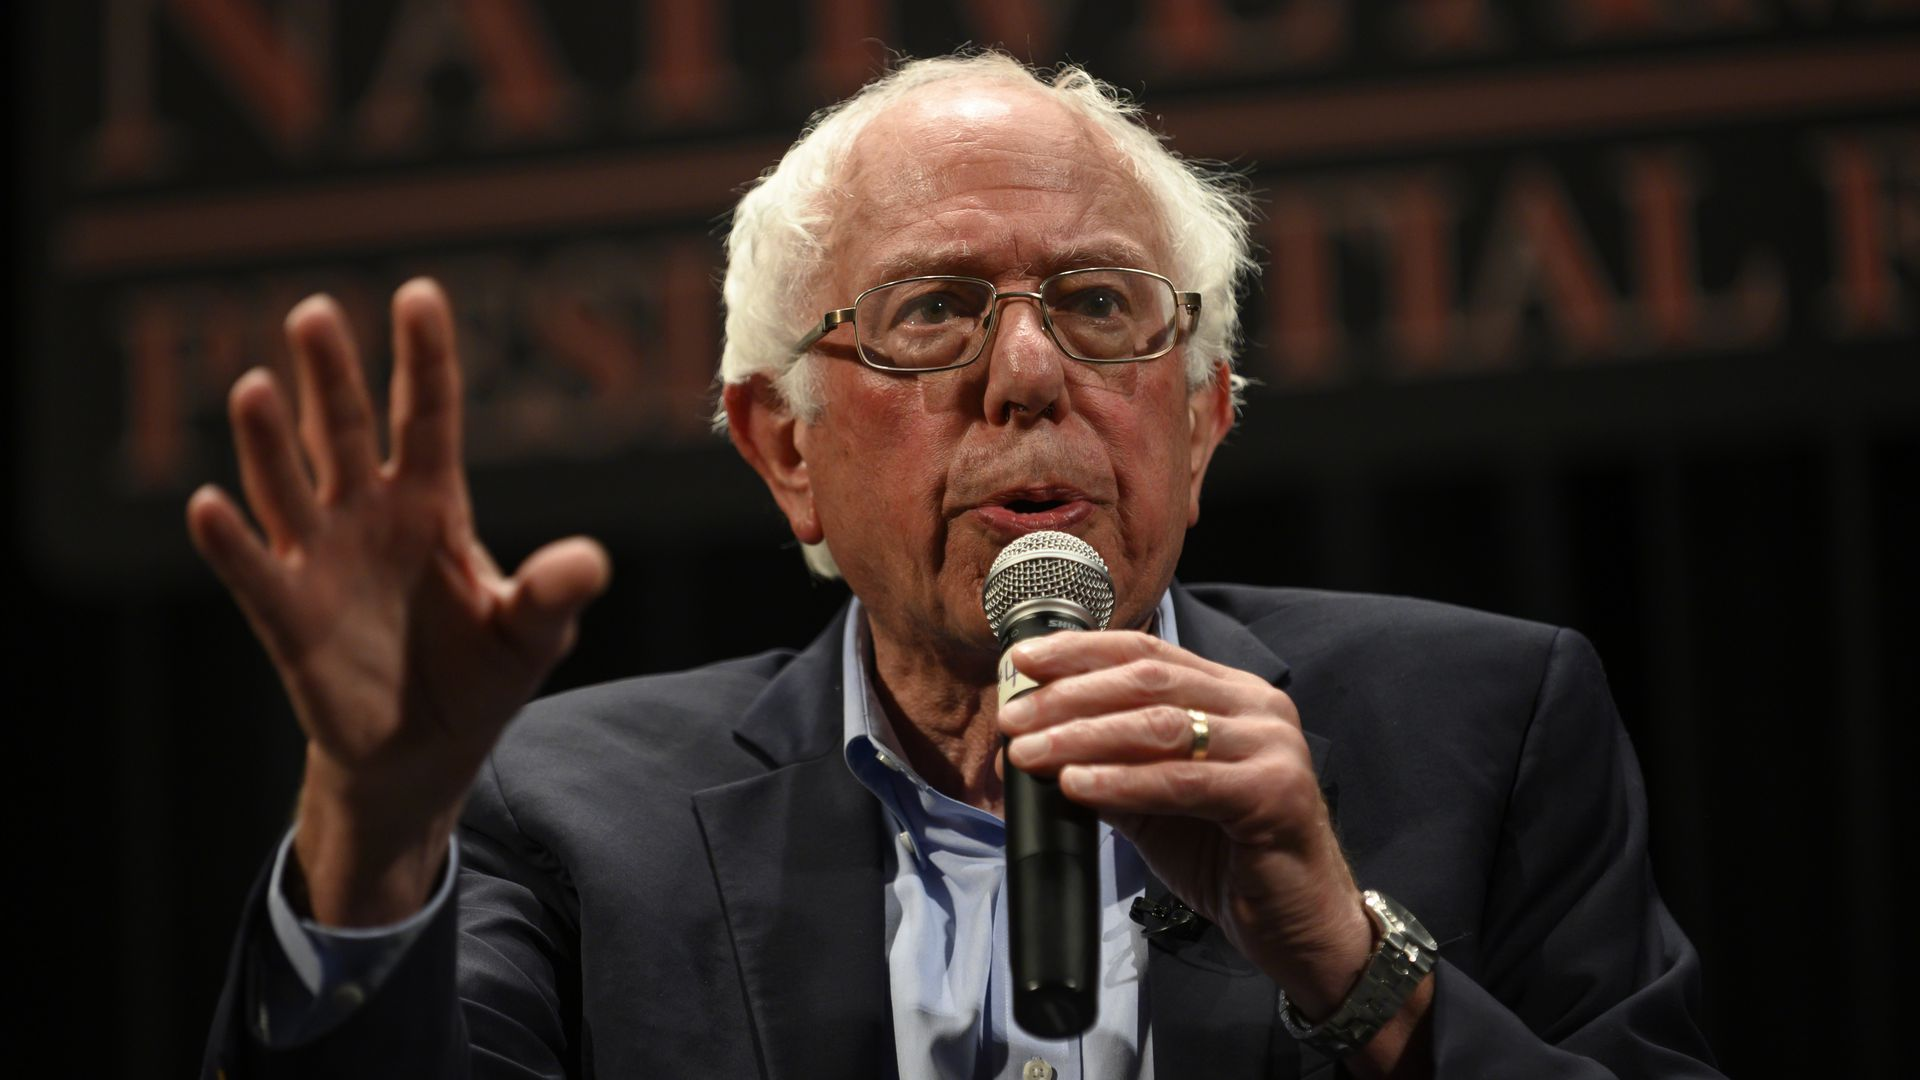 Democratic presidential candidate Sen. Bernie Sanders (I-VT) speaks at the Frank LaMere Native American Presidential Forum on August 20, 2019 in Sioux City, Iowa.